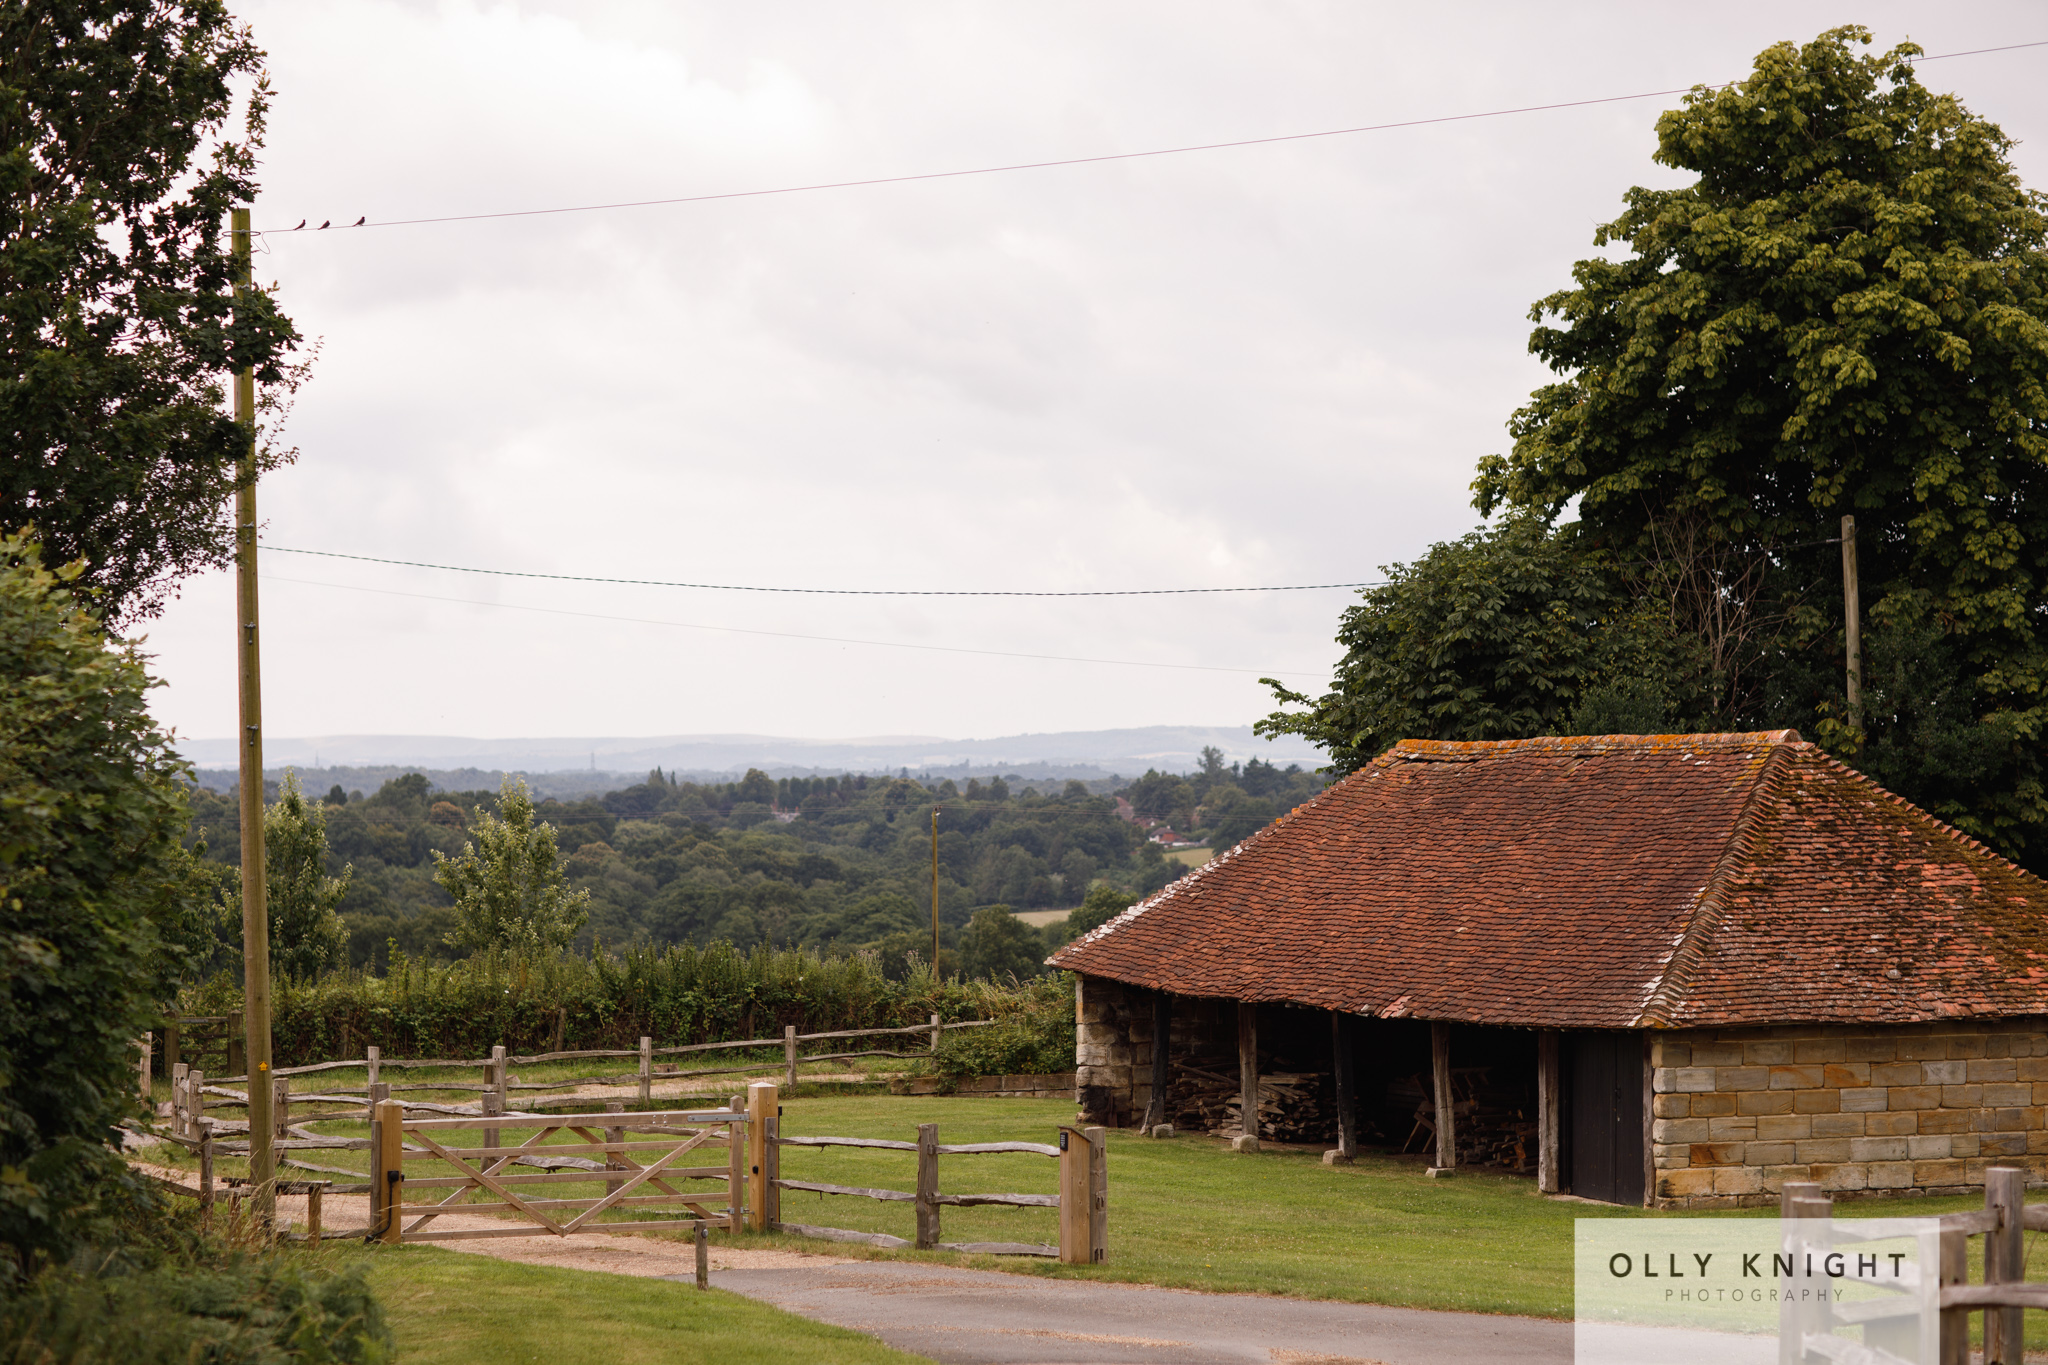 Chris & Sophia's Wedding at Hendall Manor Barn